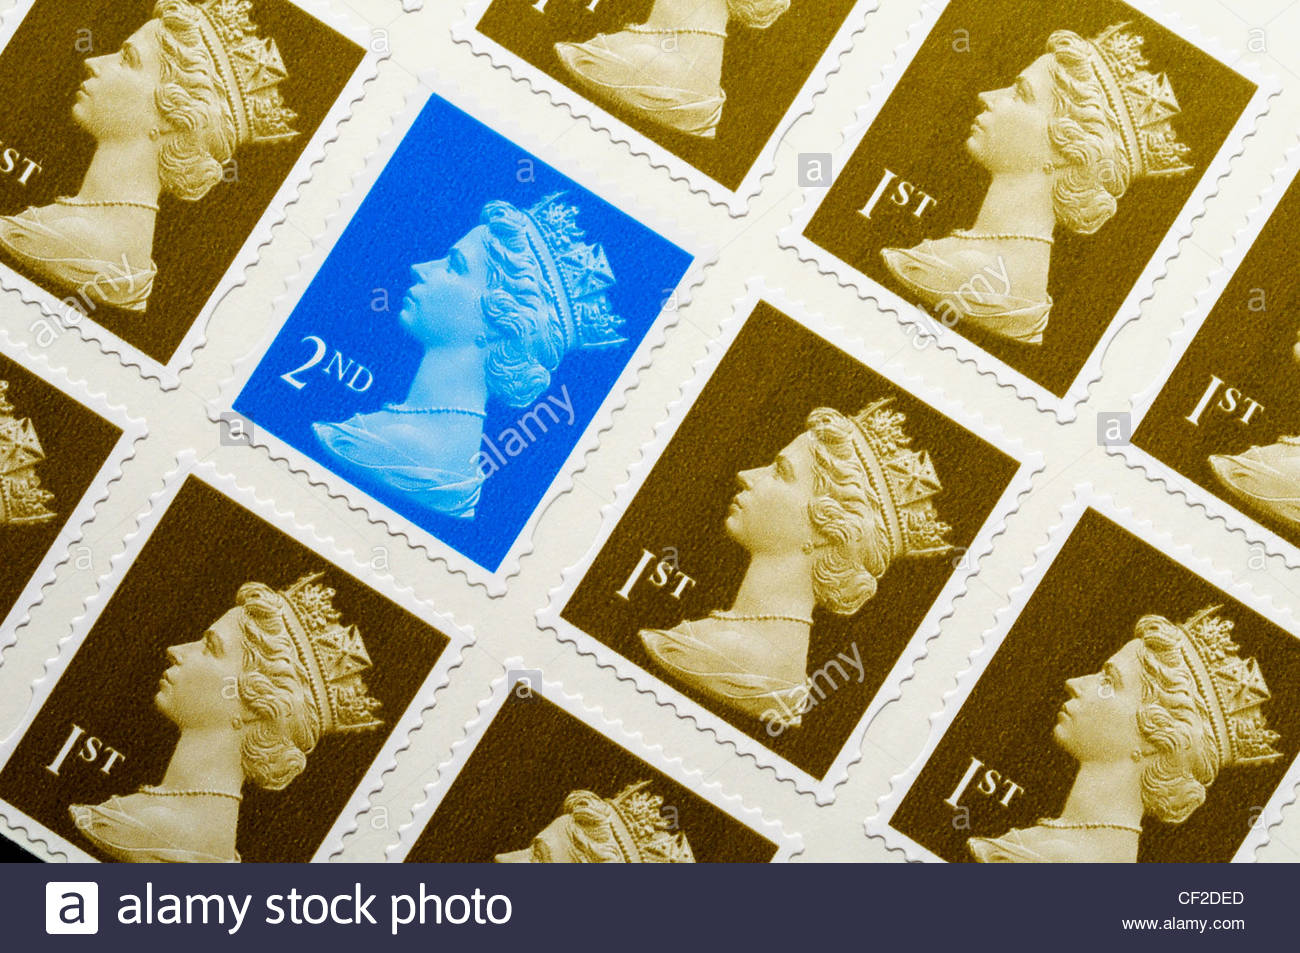 First and second Class Postage stamps, England - Stock Image